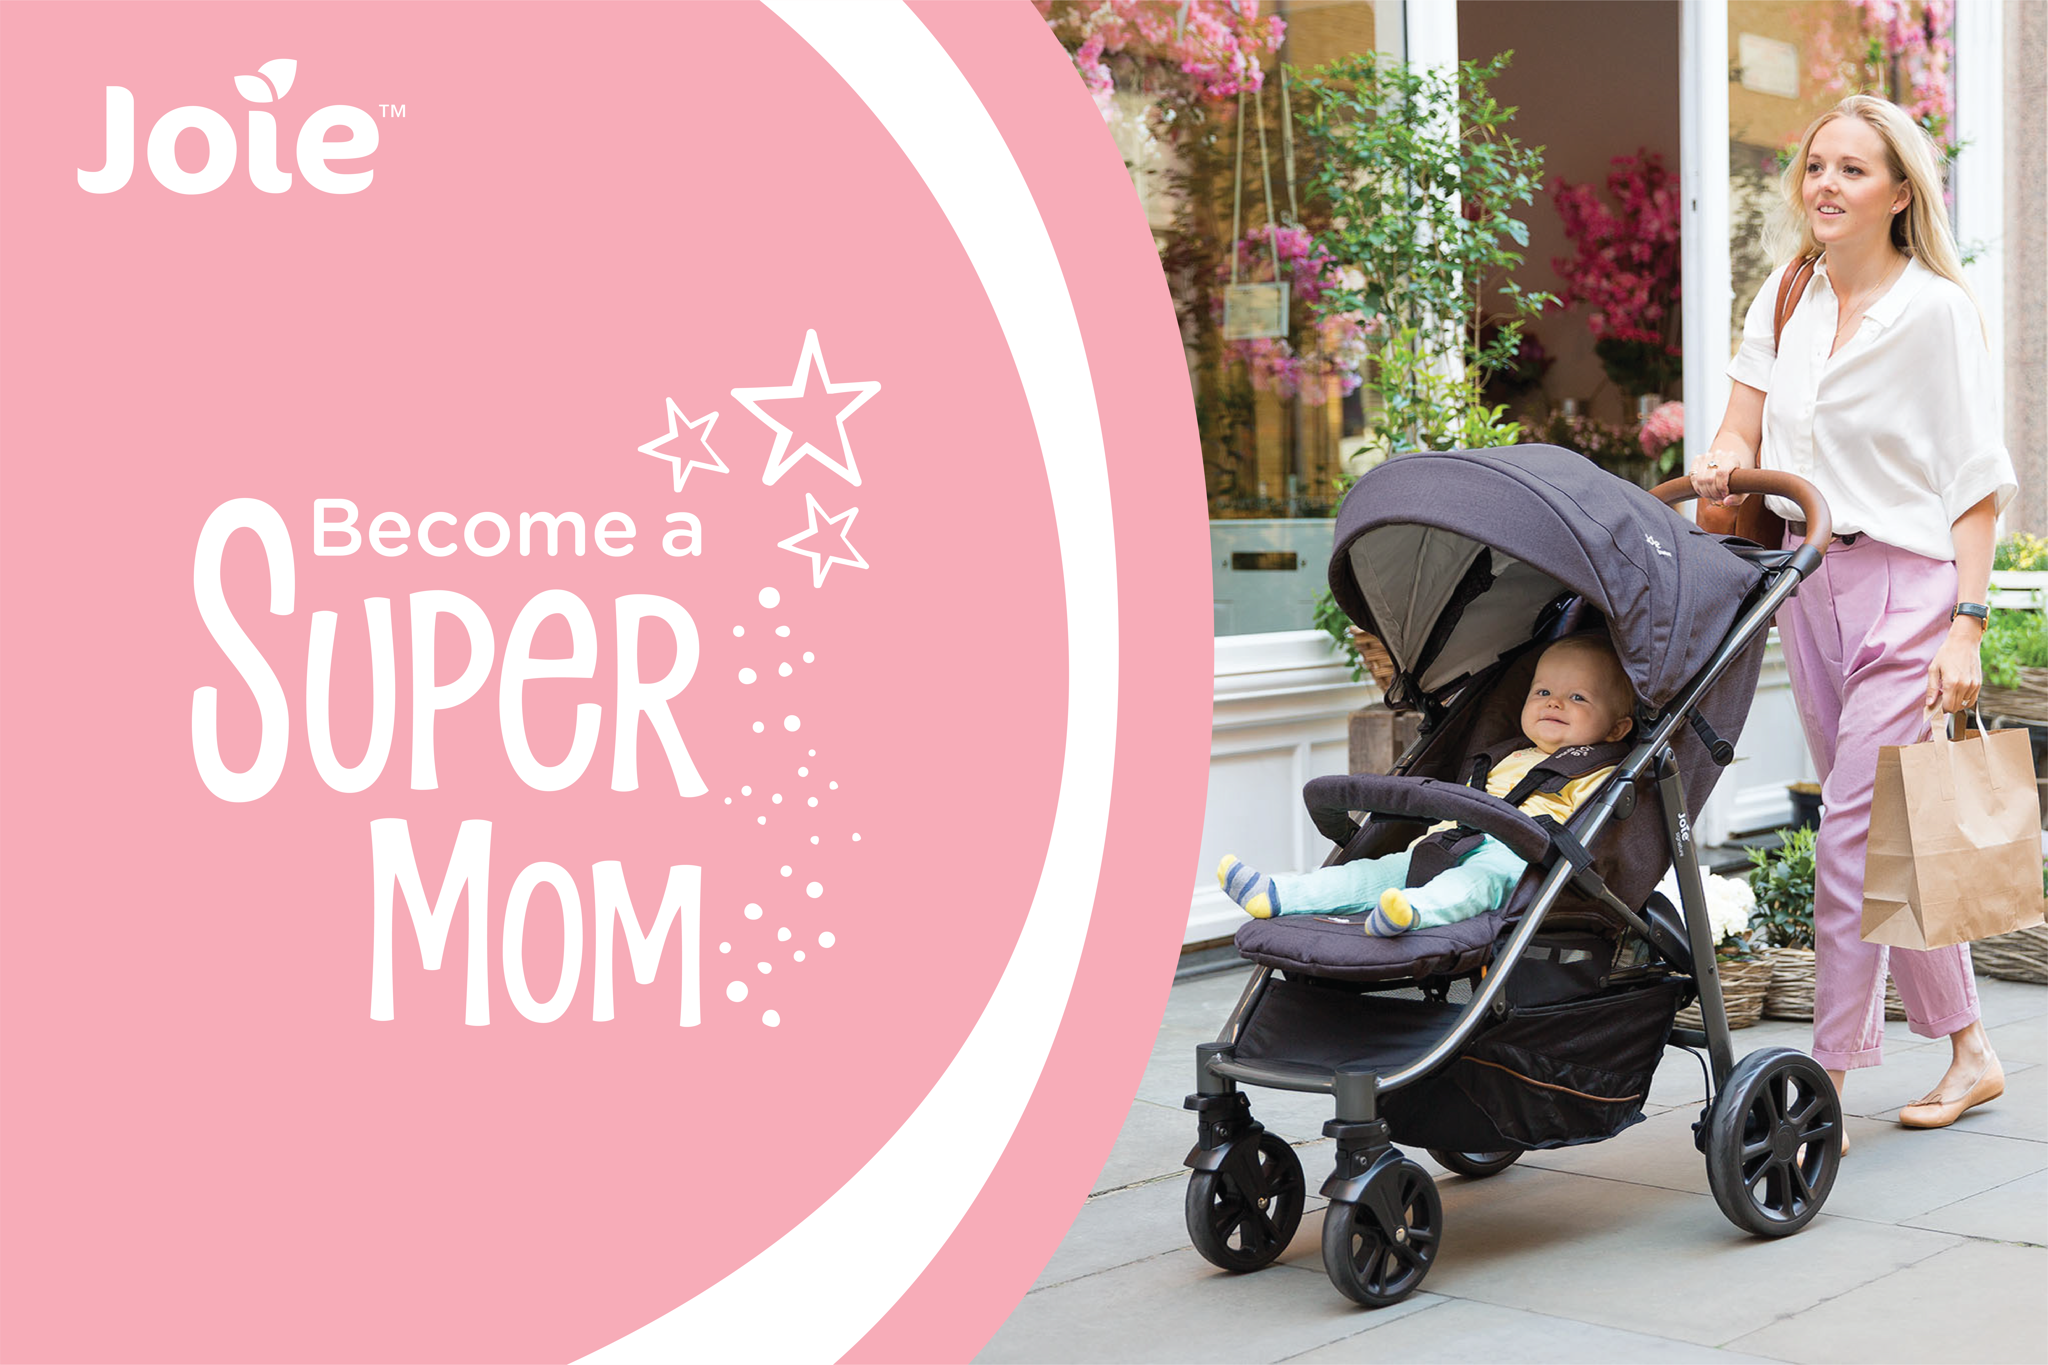 BECOME A SUPER MOM